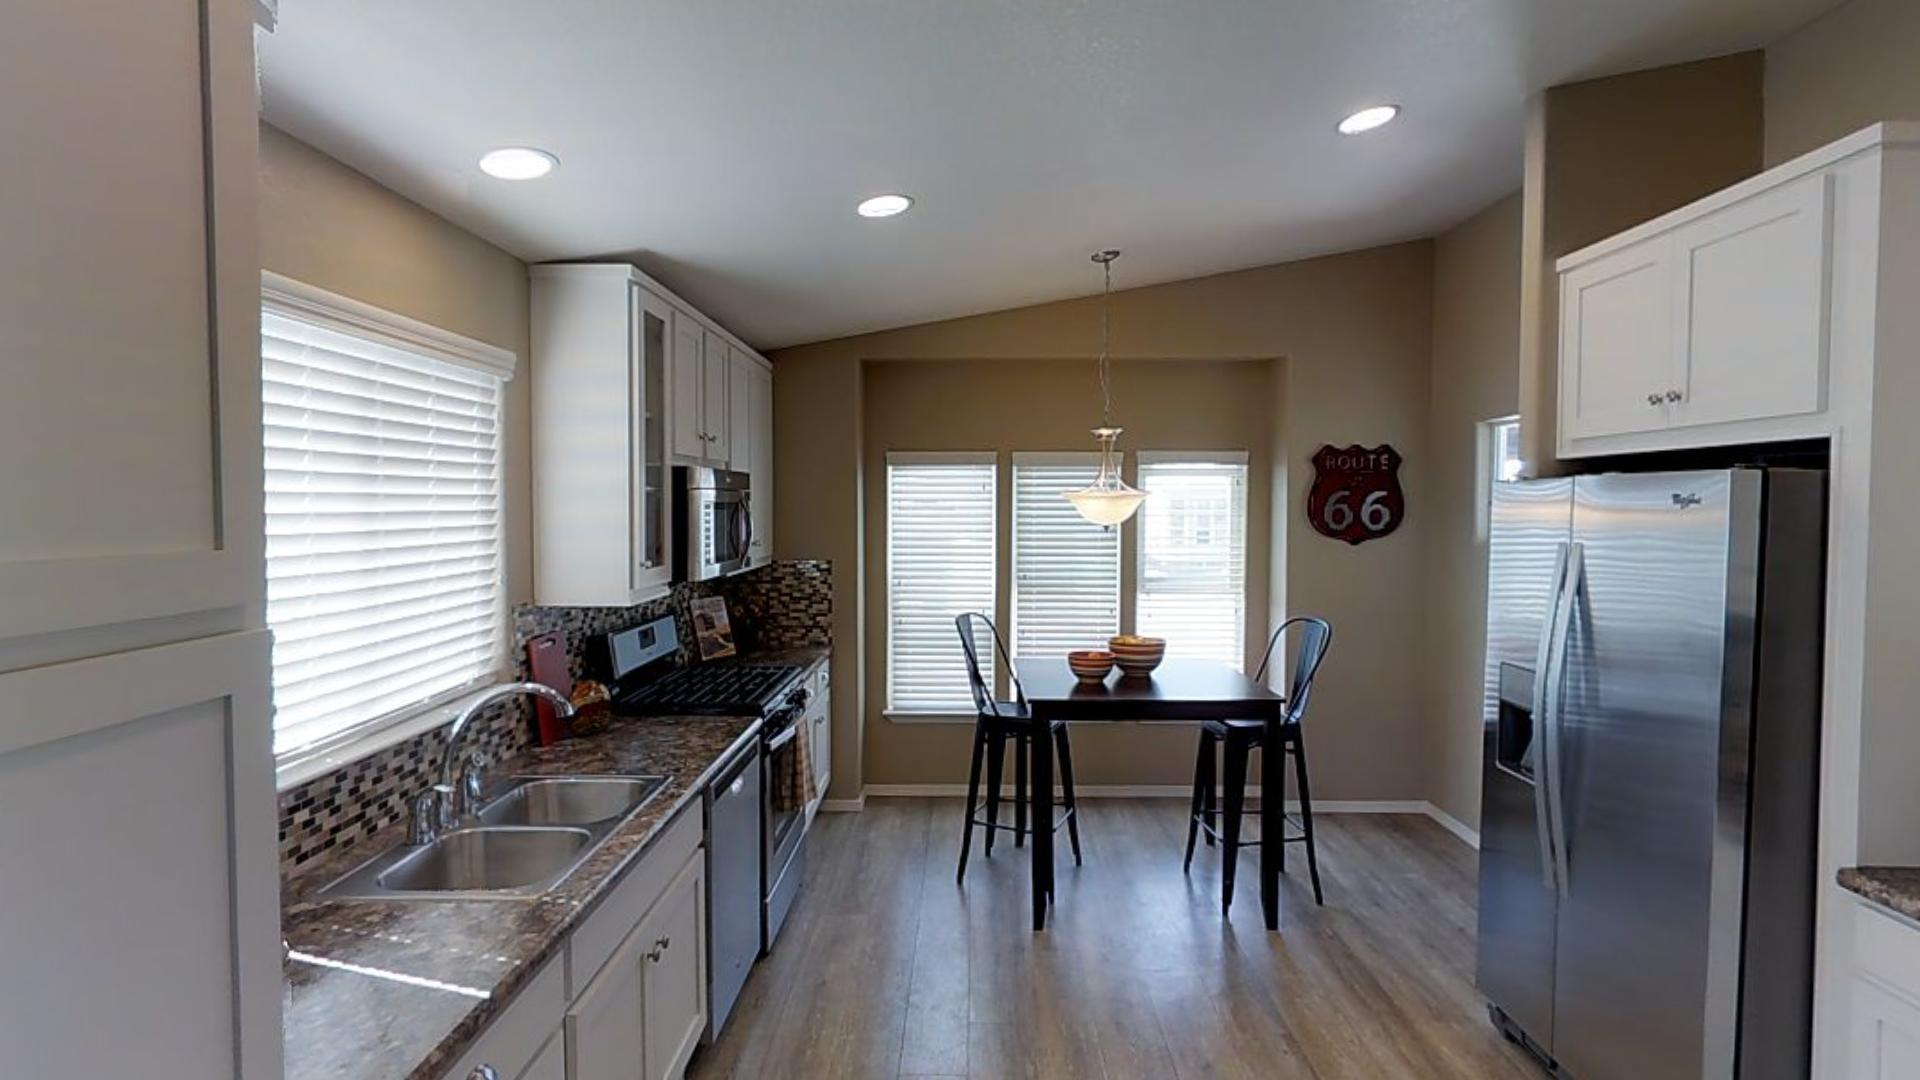 Homes For Rent Near Me Under $700